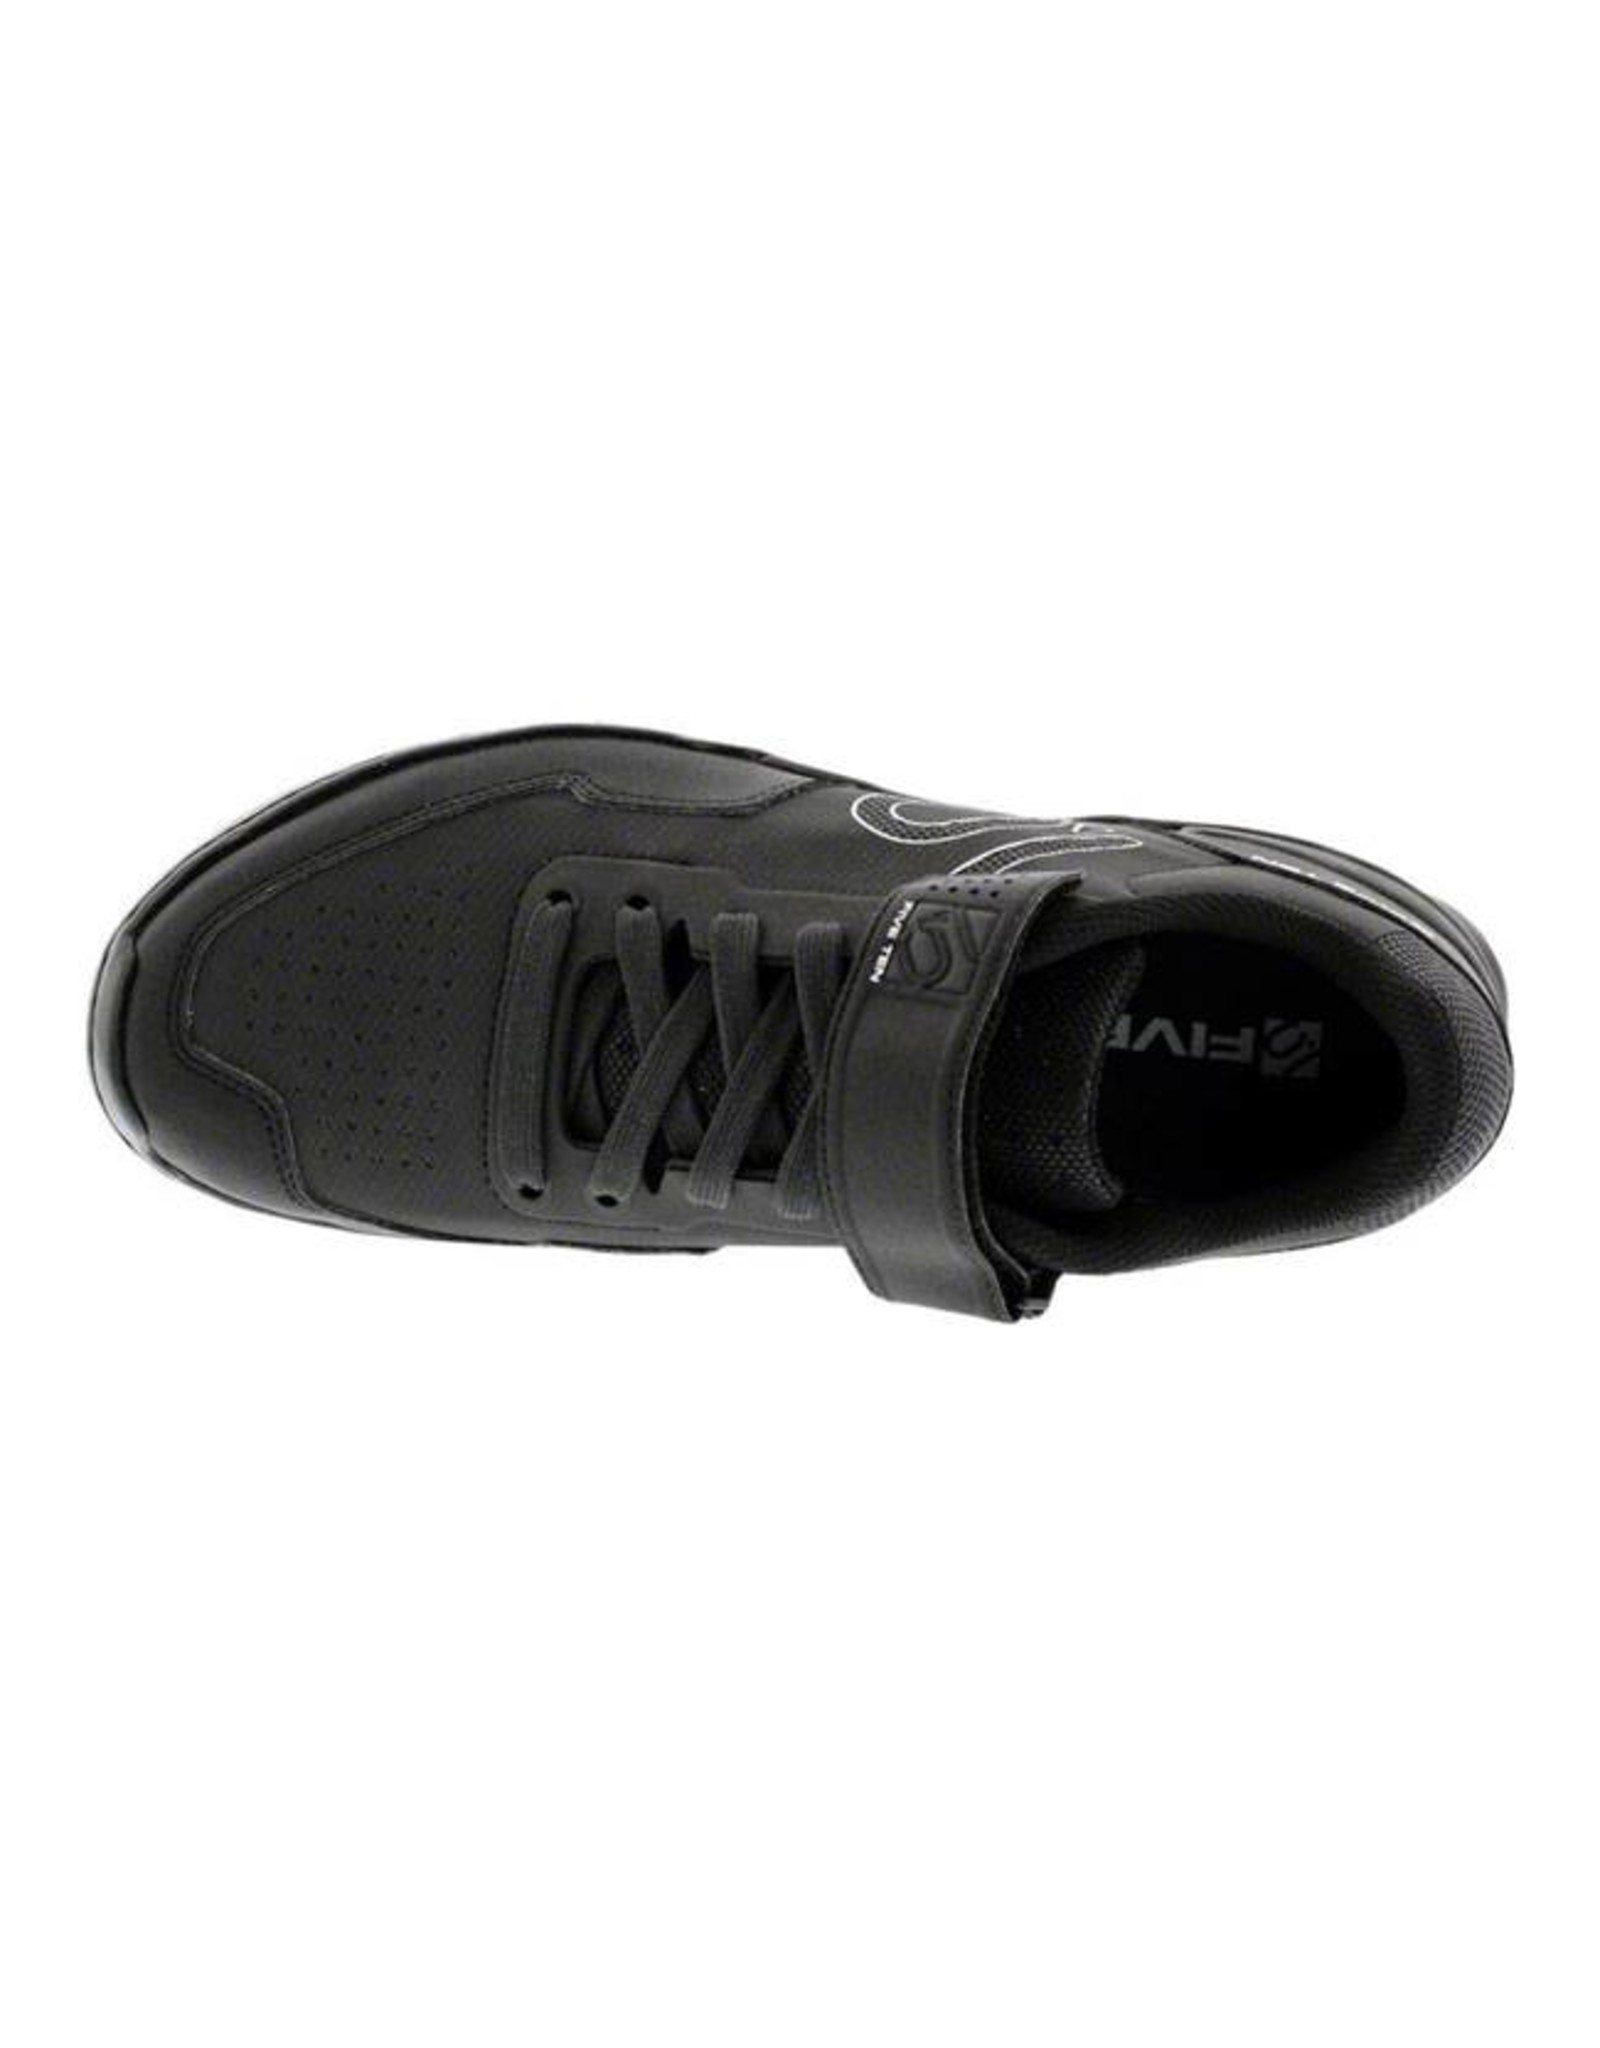 Five Ten Five Ten Kestrel Lace Men's Clipless Shoe: Black Carbon 10.5